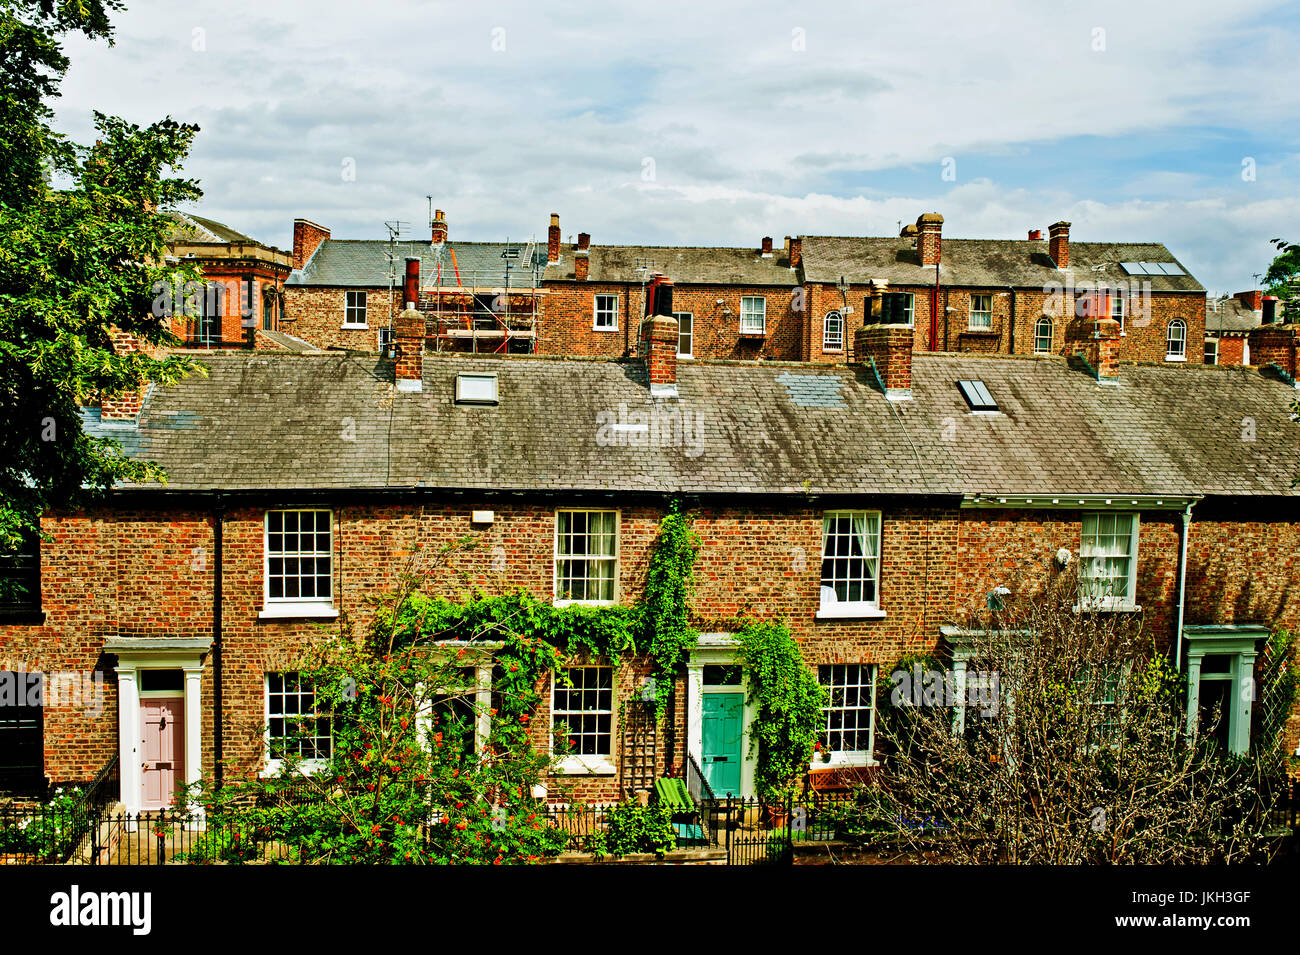 Dewsburry Terrace Cottages, Mickelgate, York - Stock Image